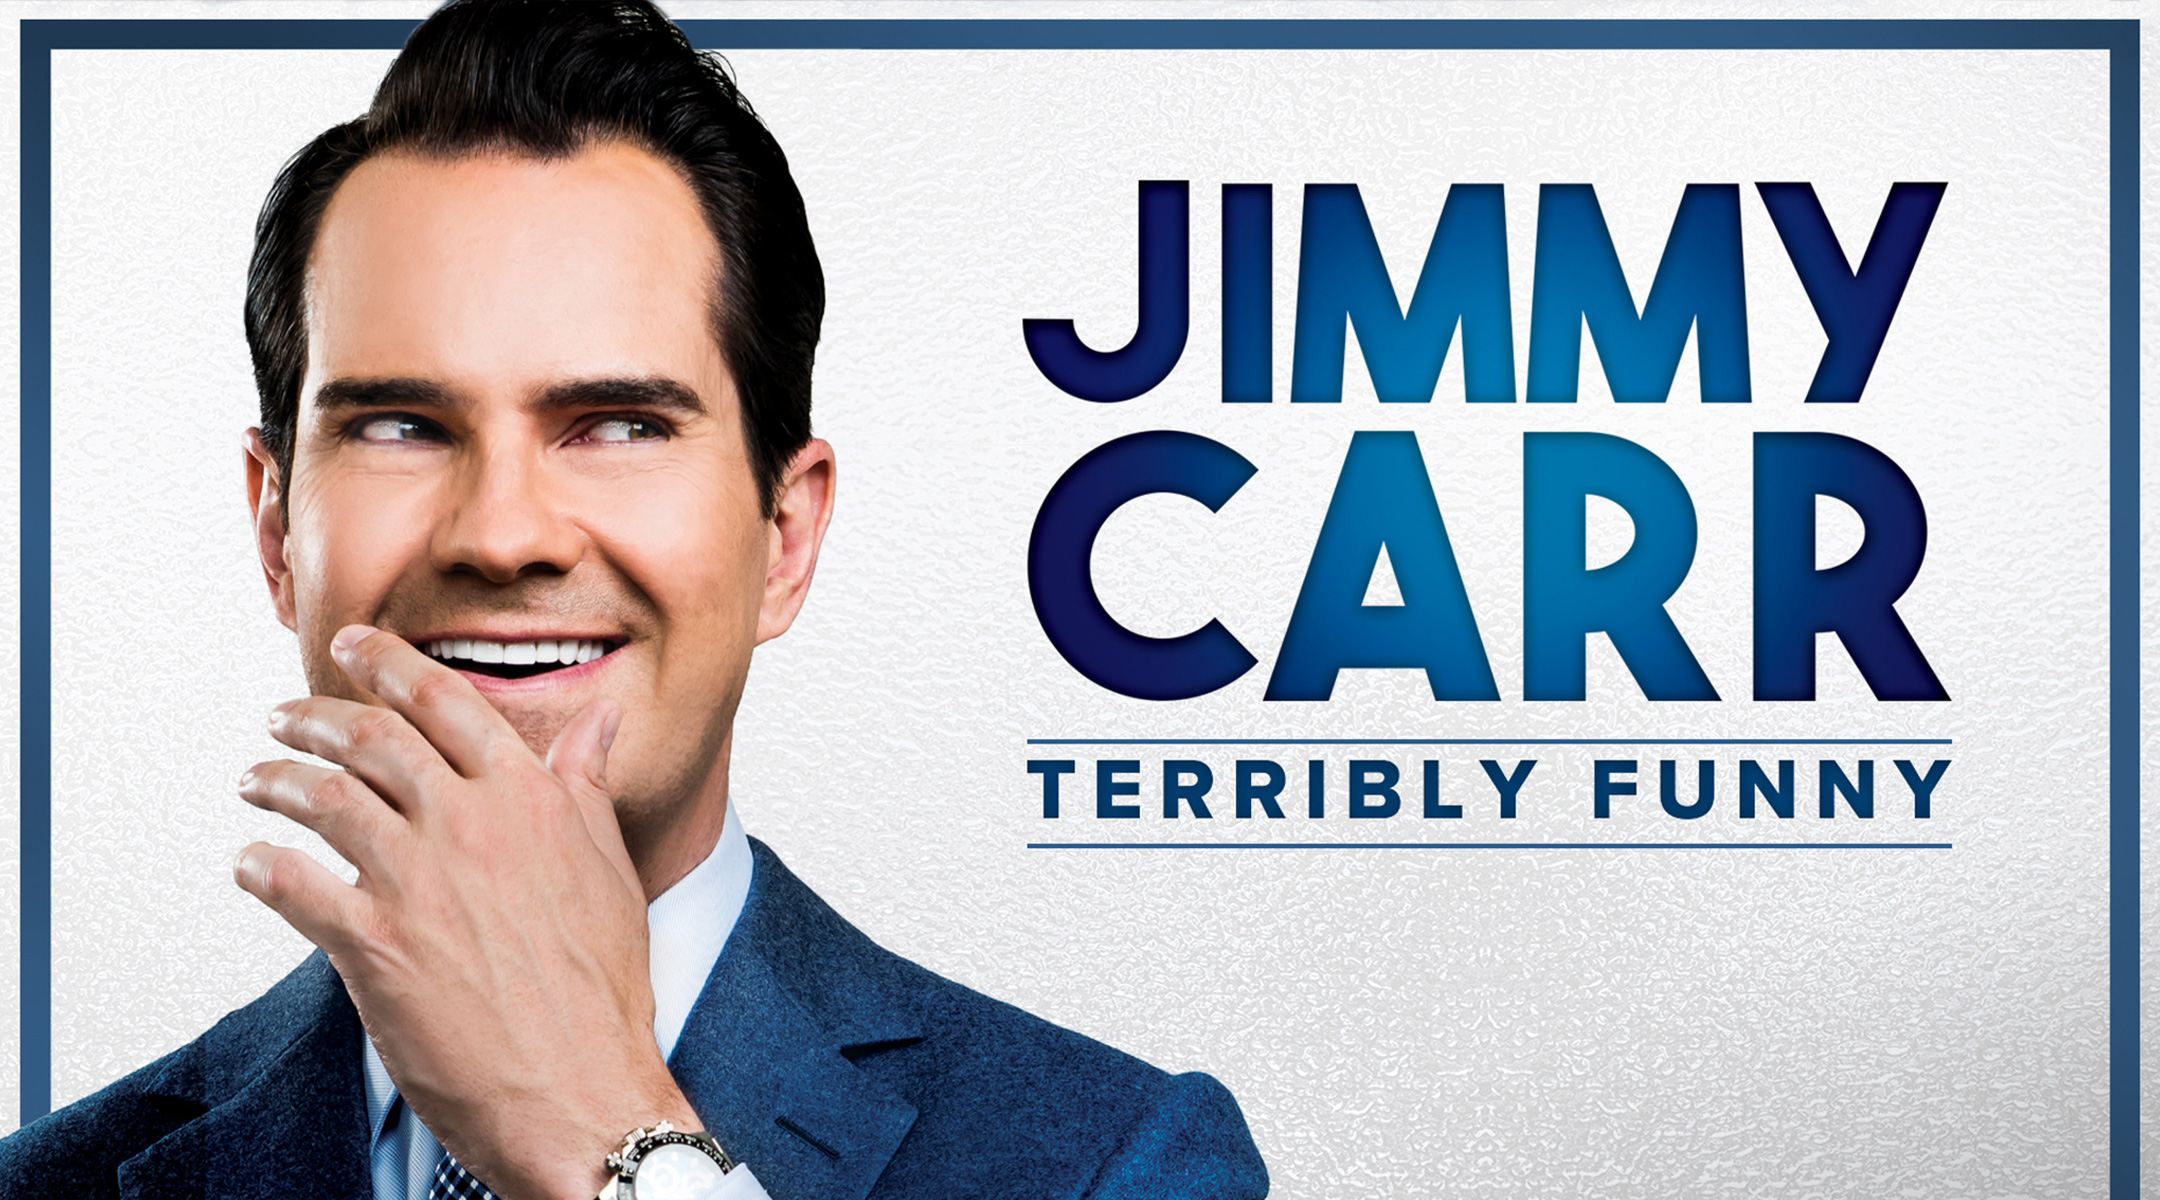 Jimmy Carr: Terribly Funny - Weston Super Mare - Early Show